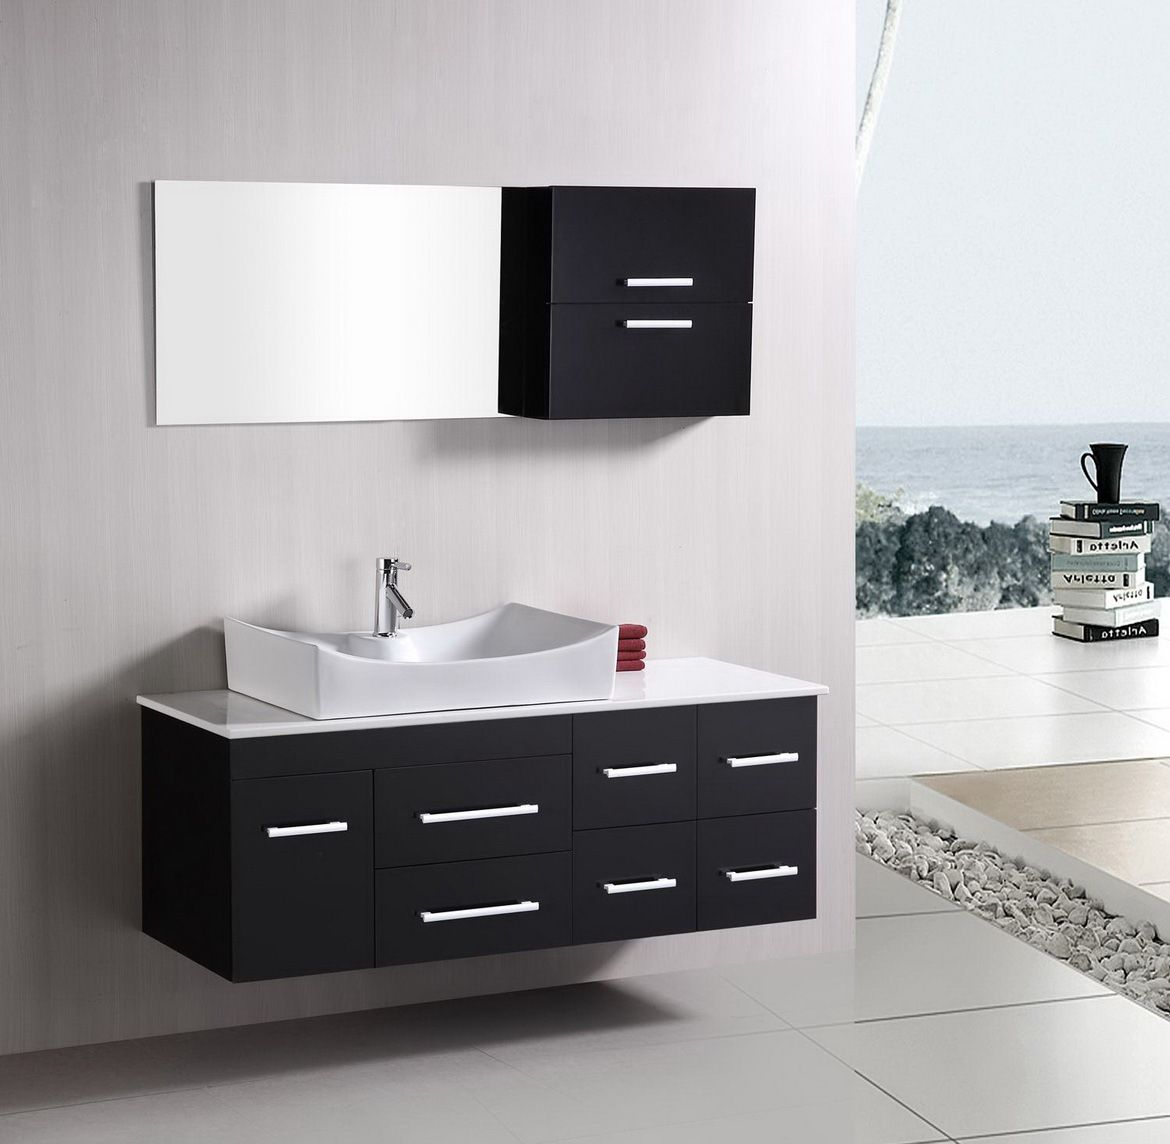 Small contemporary bathroom vanities design ideas for for Modern bathroom cabinets ideas